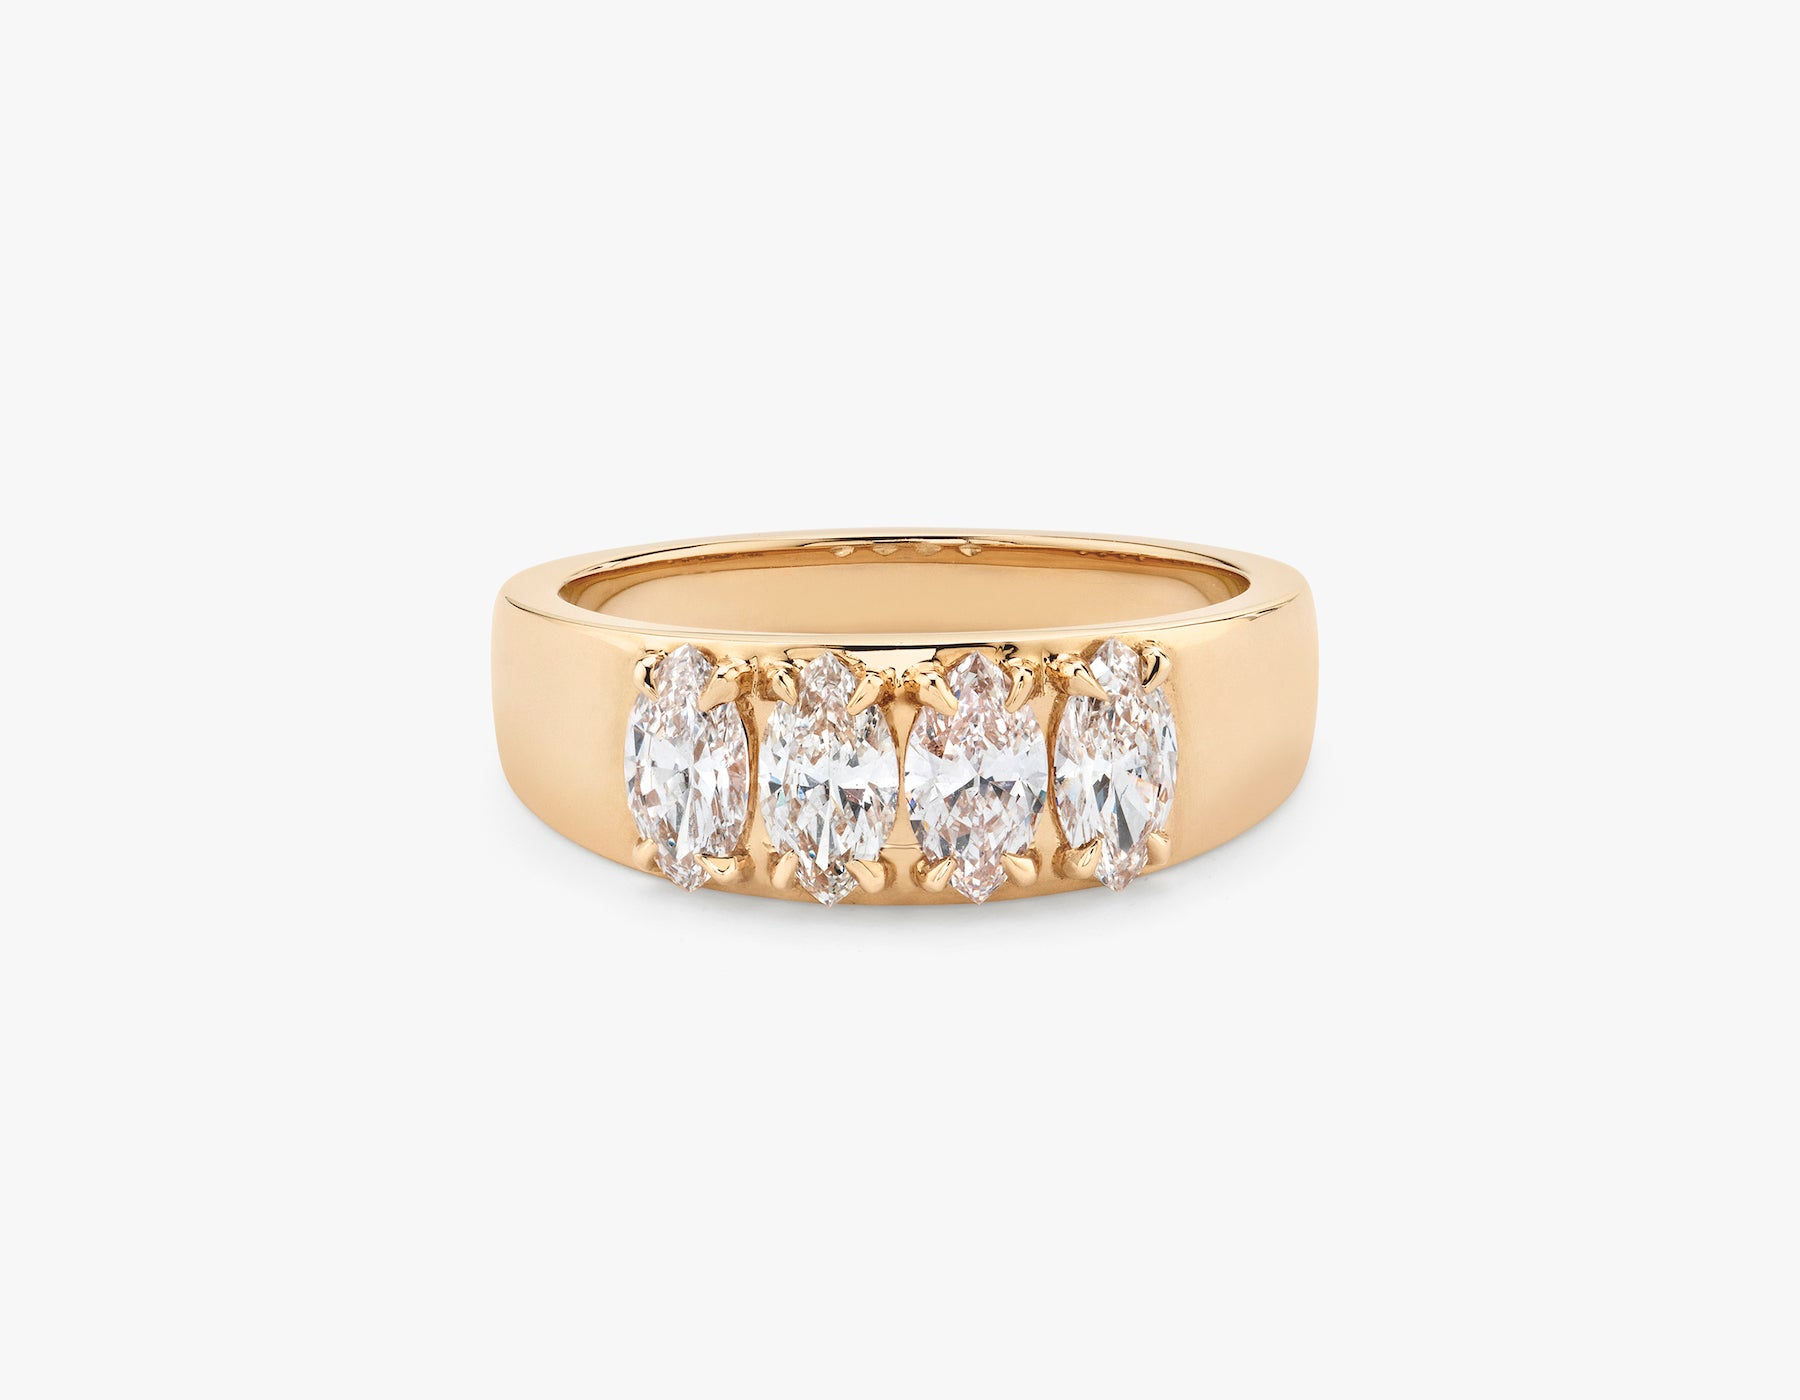 Vrai simple minimalist marquise Diamond Tetrad Band .25ct Marquise Diamond Ring, 14K Rose Gold